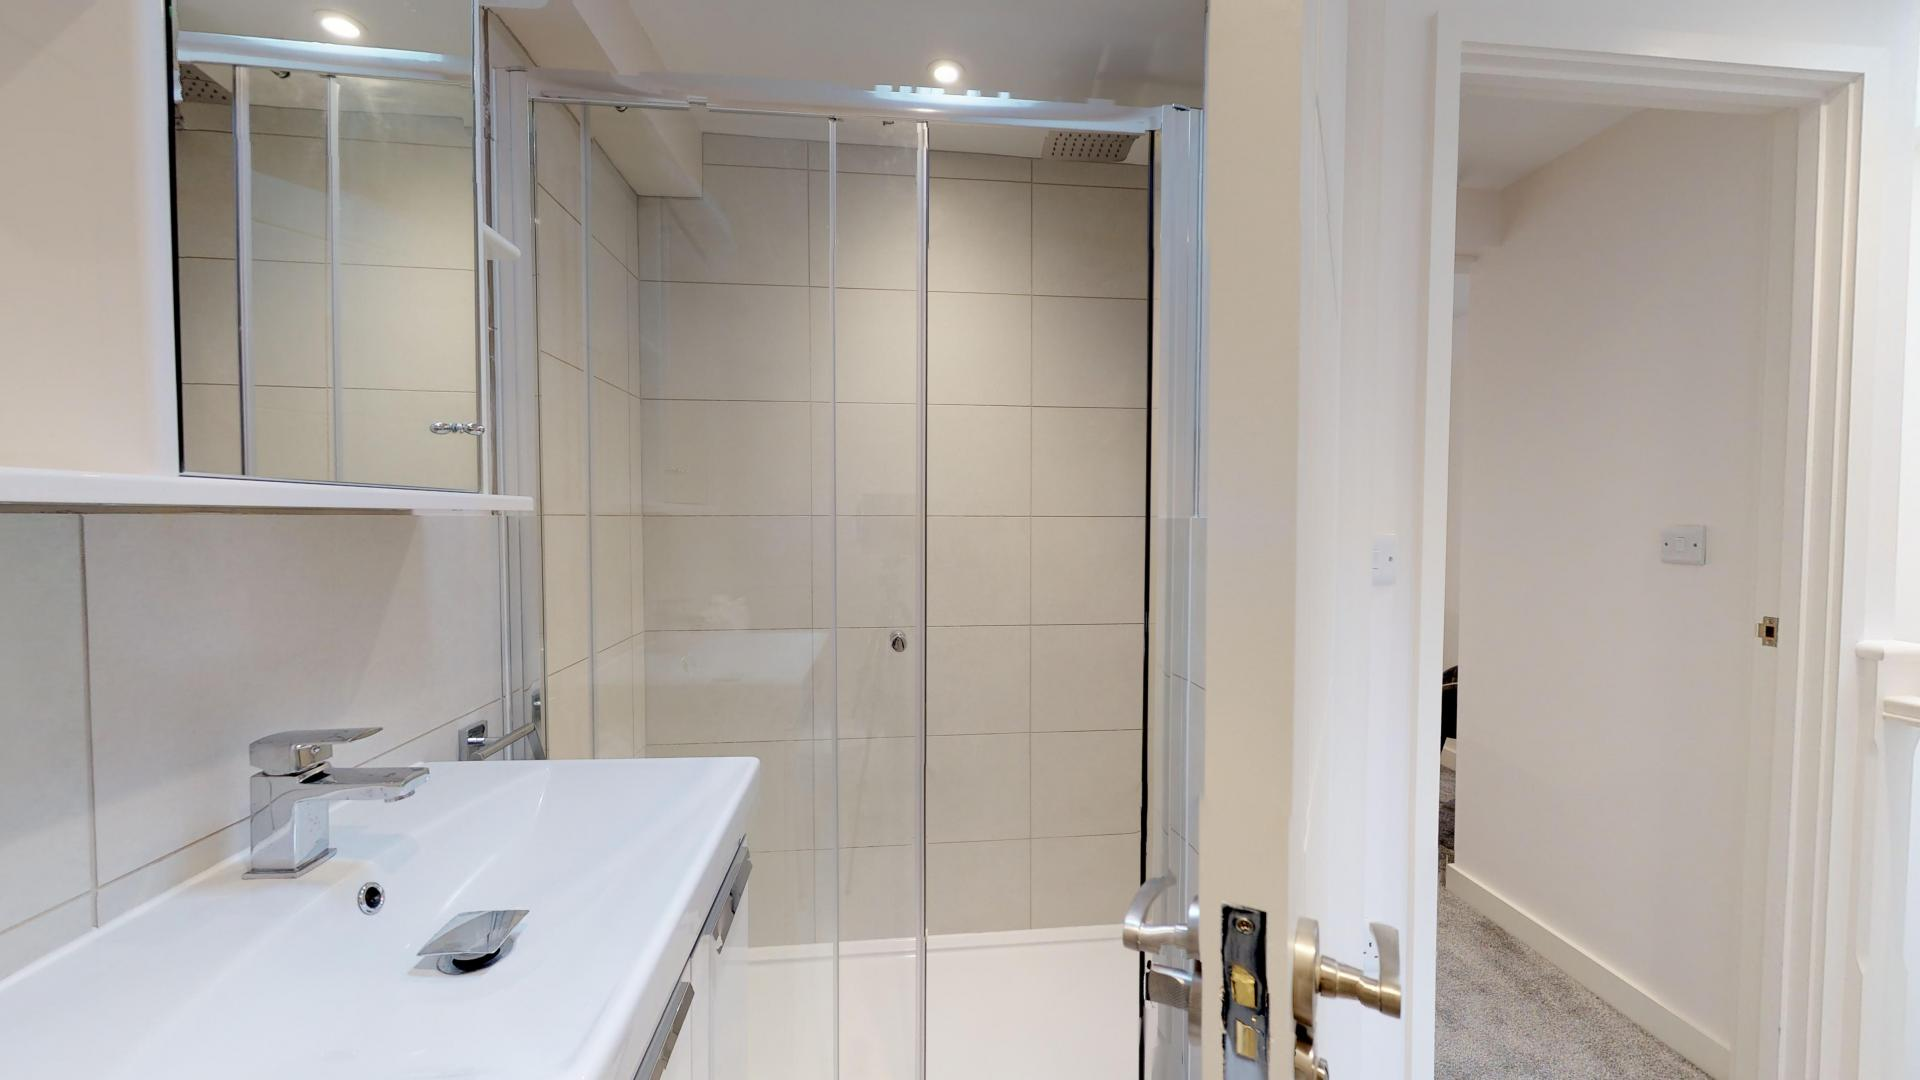 Bathroom at Rogers Street House, Summertown, Oxford - Citybase Apartments